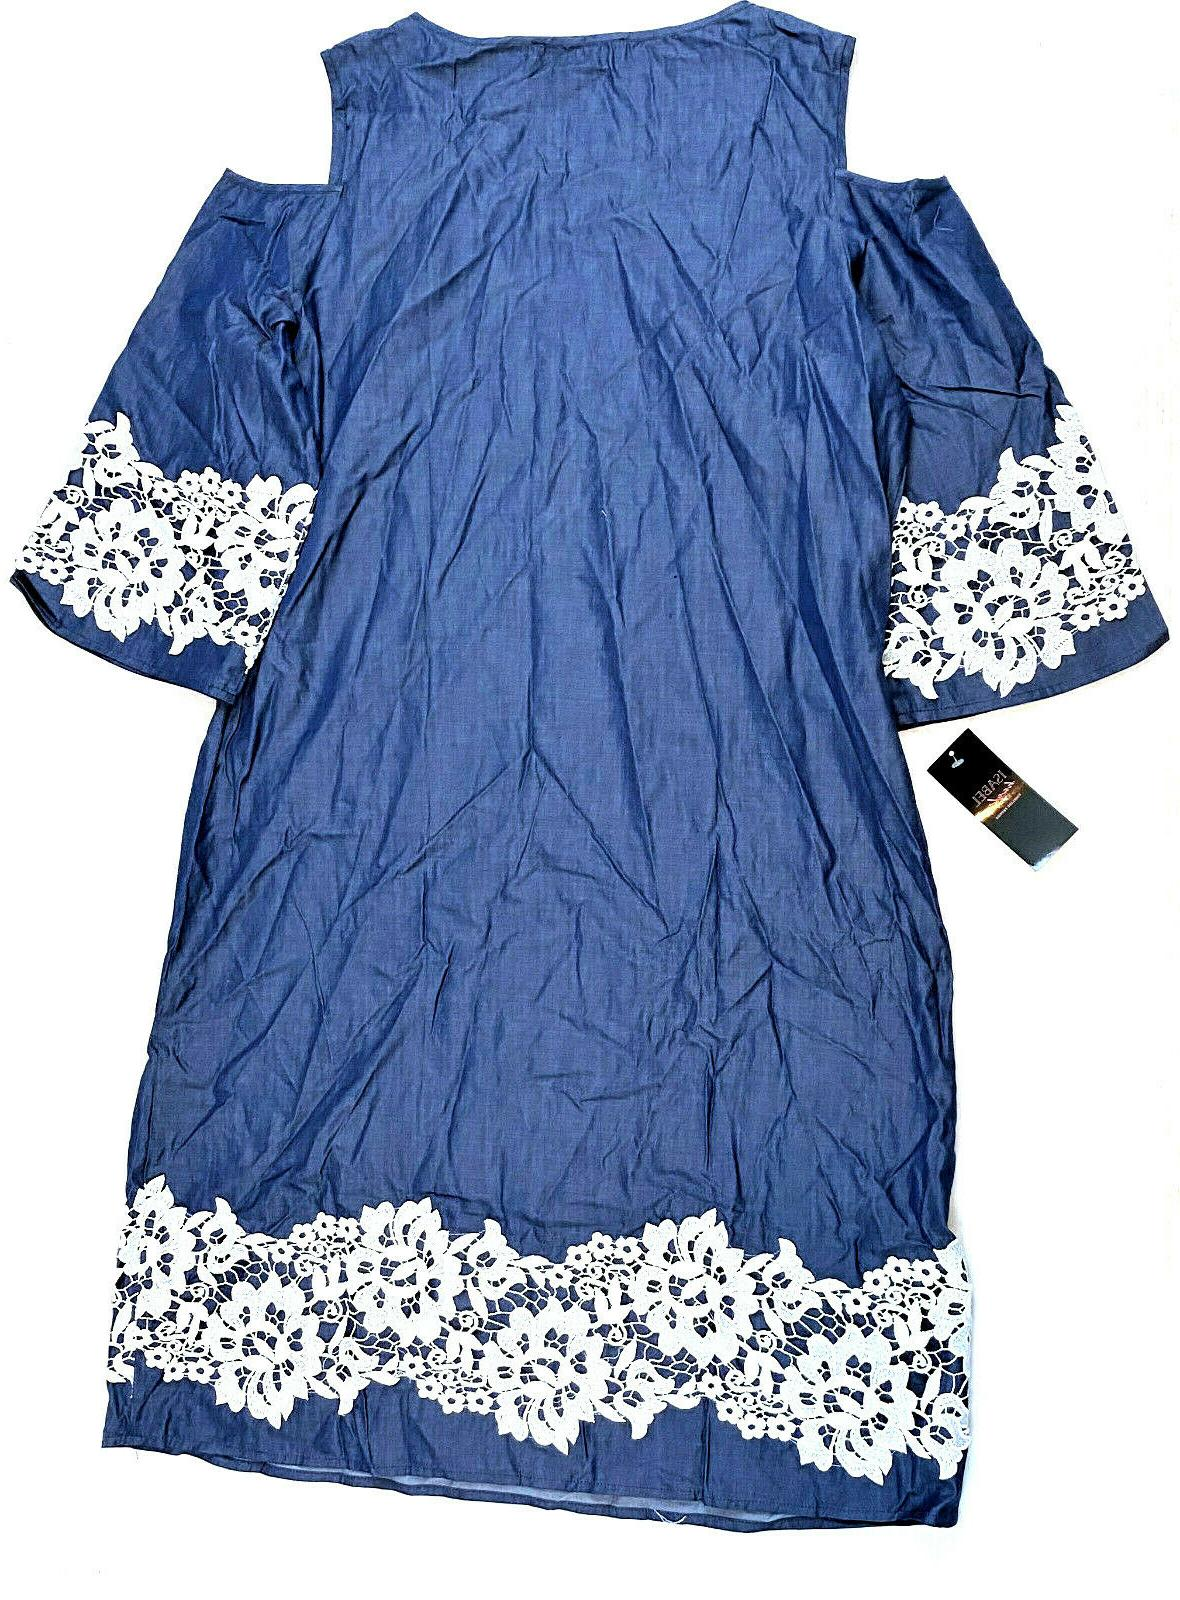 Isabel Hayley Lace Blue, Size $68.00